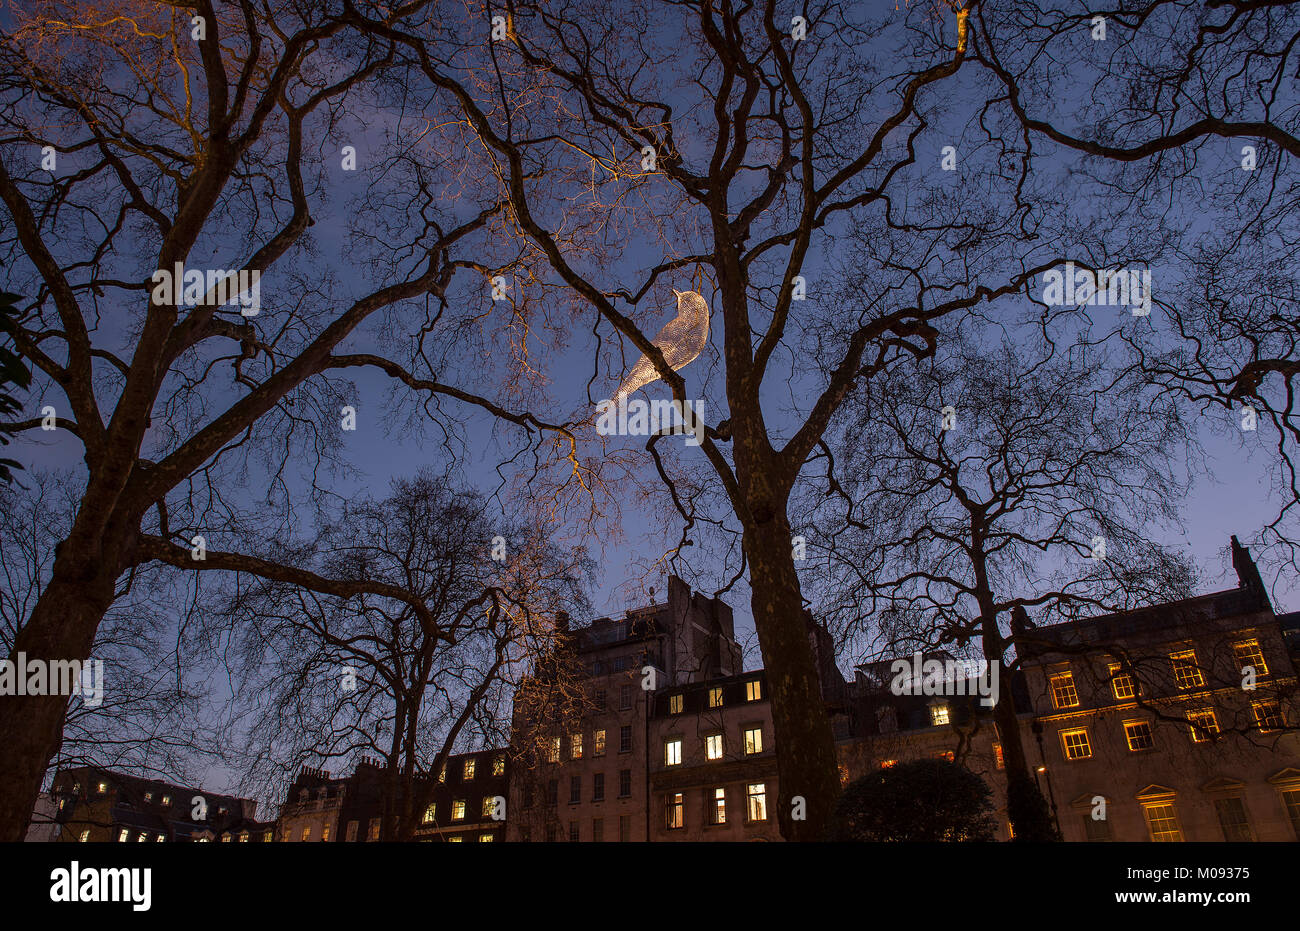 18 Jan 2018. Lumiere London, Berkeley Square, 'Was That a Dream?', a bird illuminated against the night - Stock Image